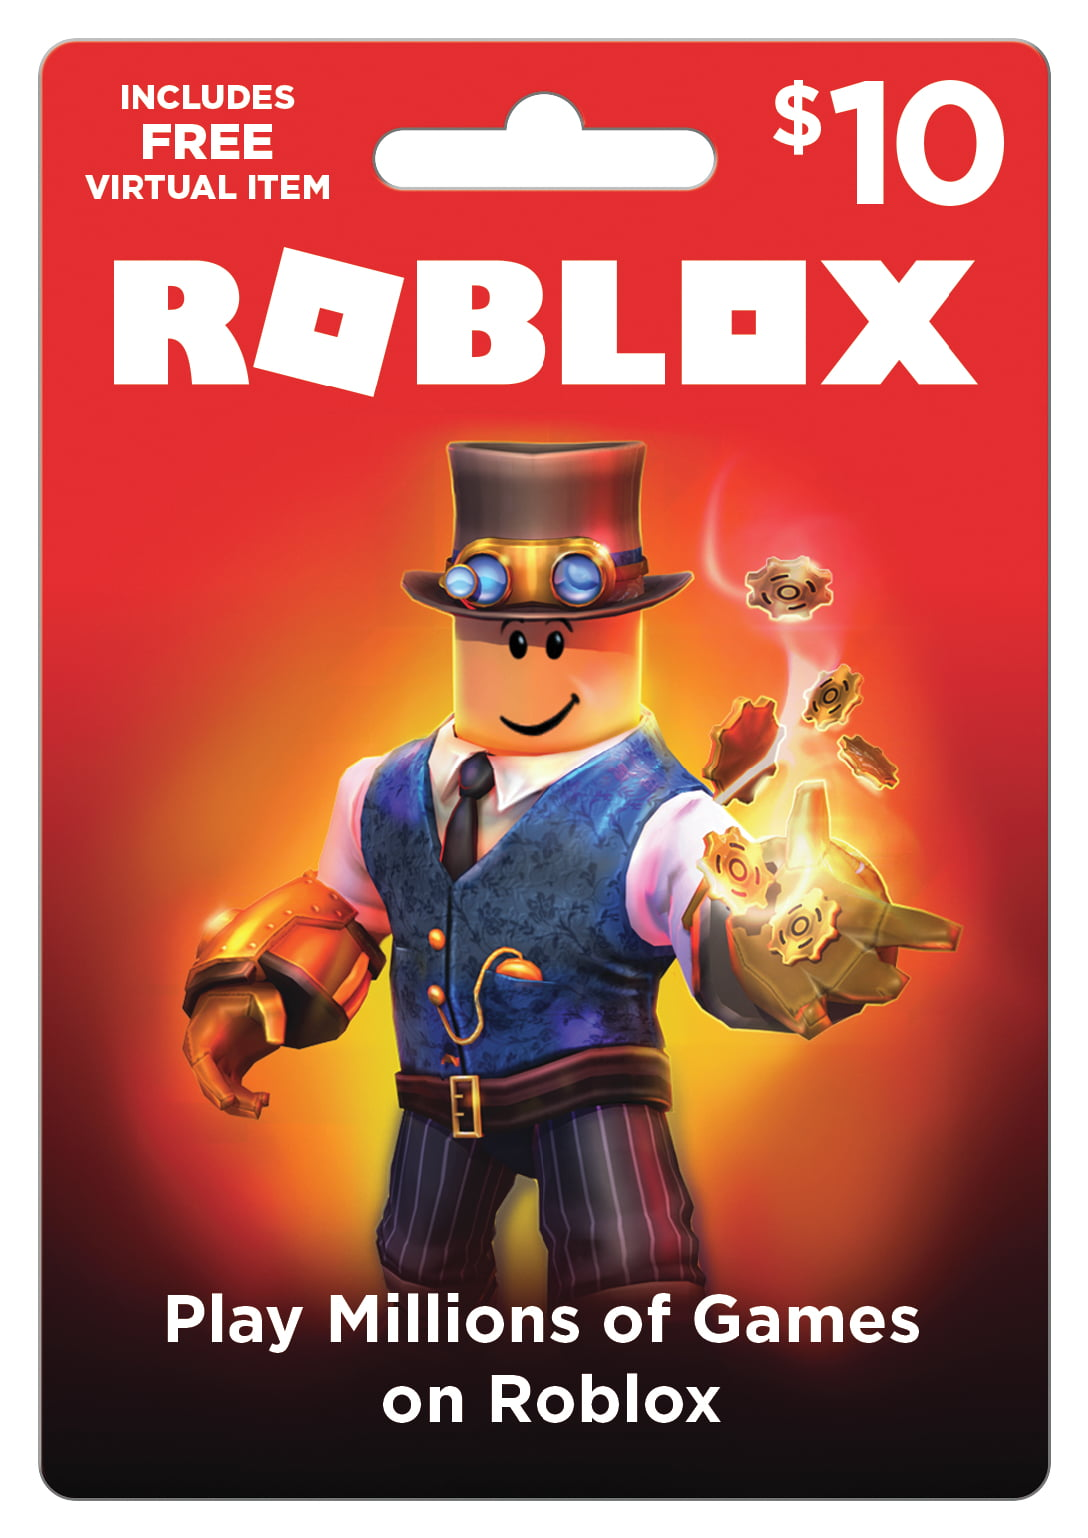 free robux codes june 2018 hd mp4 How To Use The Roblox Star Code On Roblox Free Robux Promo Codes 2019 Real Unused Credit